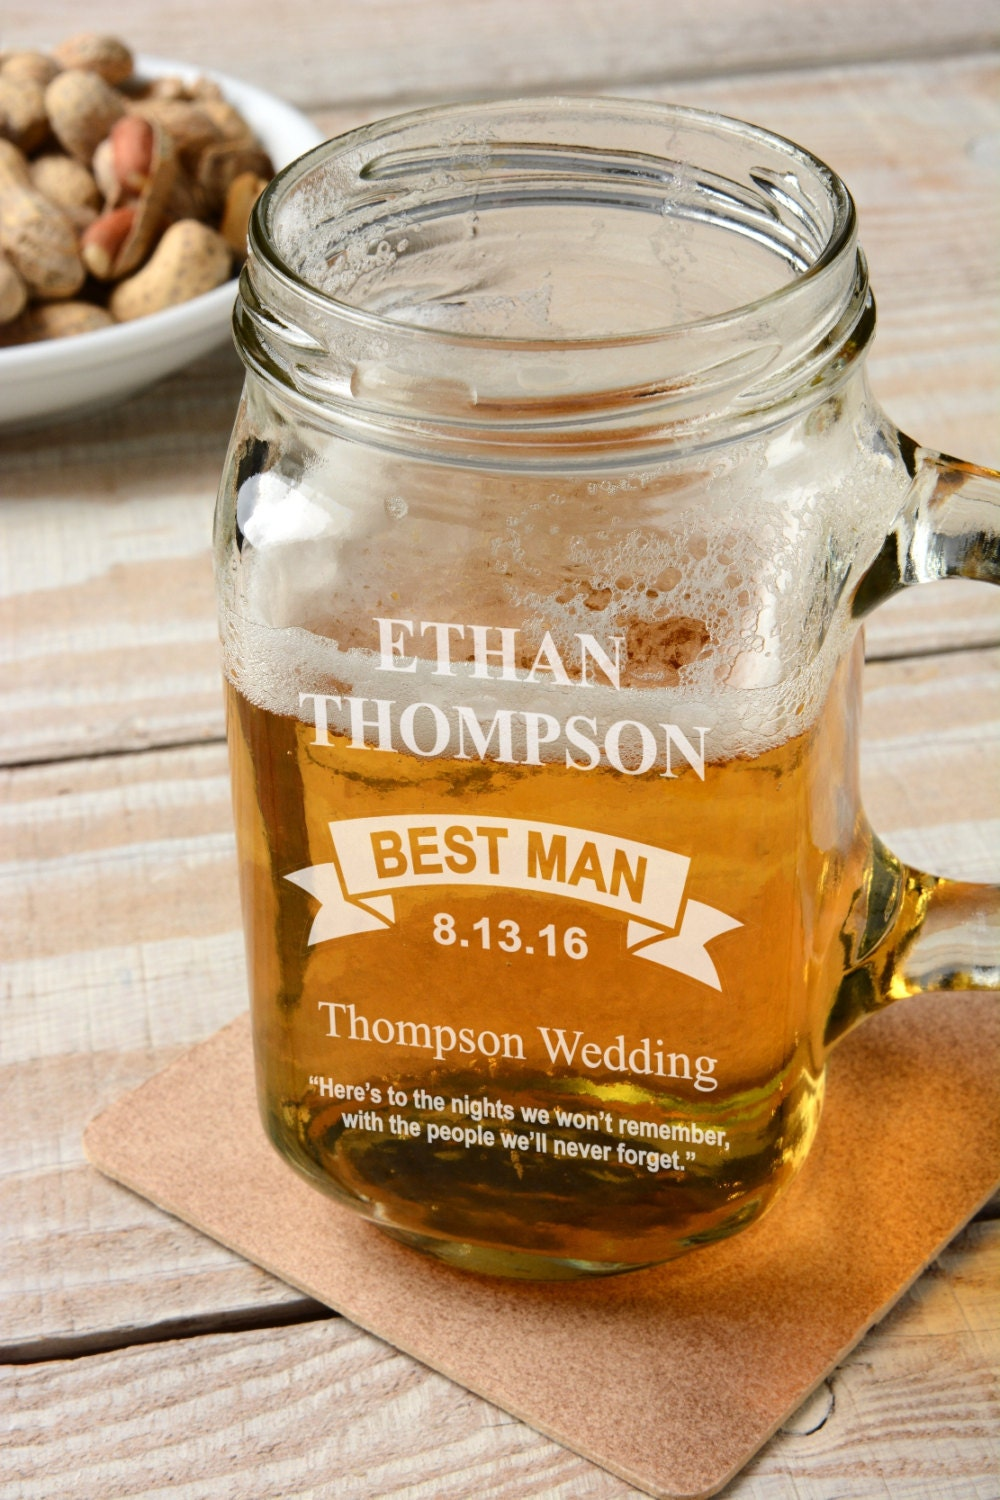 Wedding Gifts Engraved Glasses : Personalized Wedding Favors Glass Beer Mugs Bridesmaid